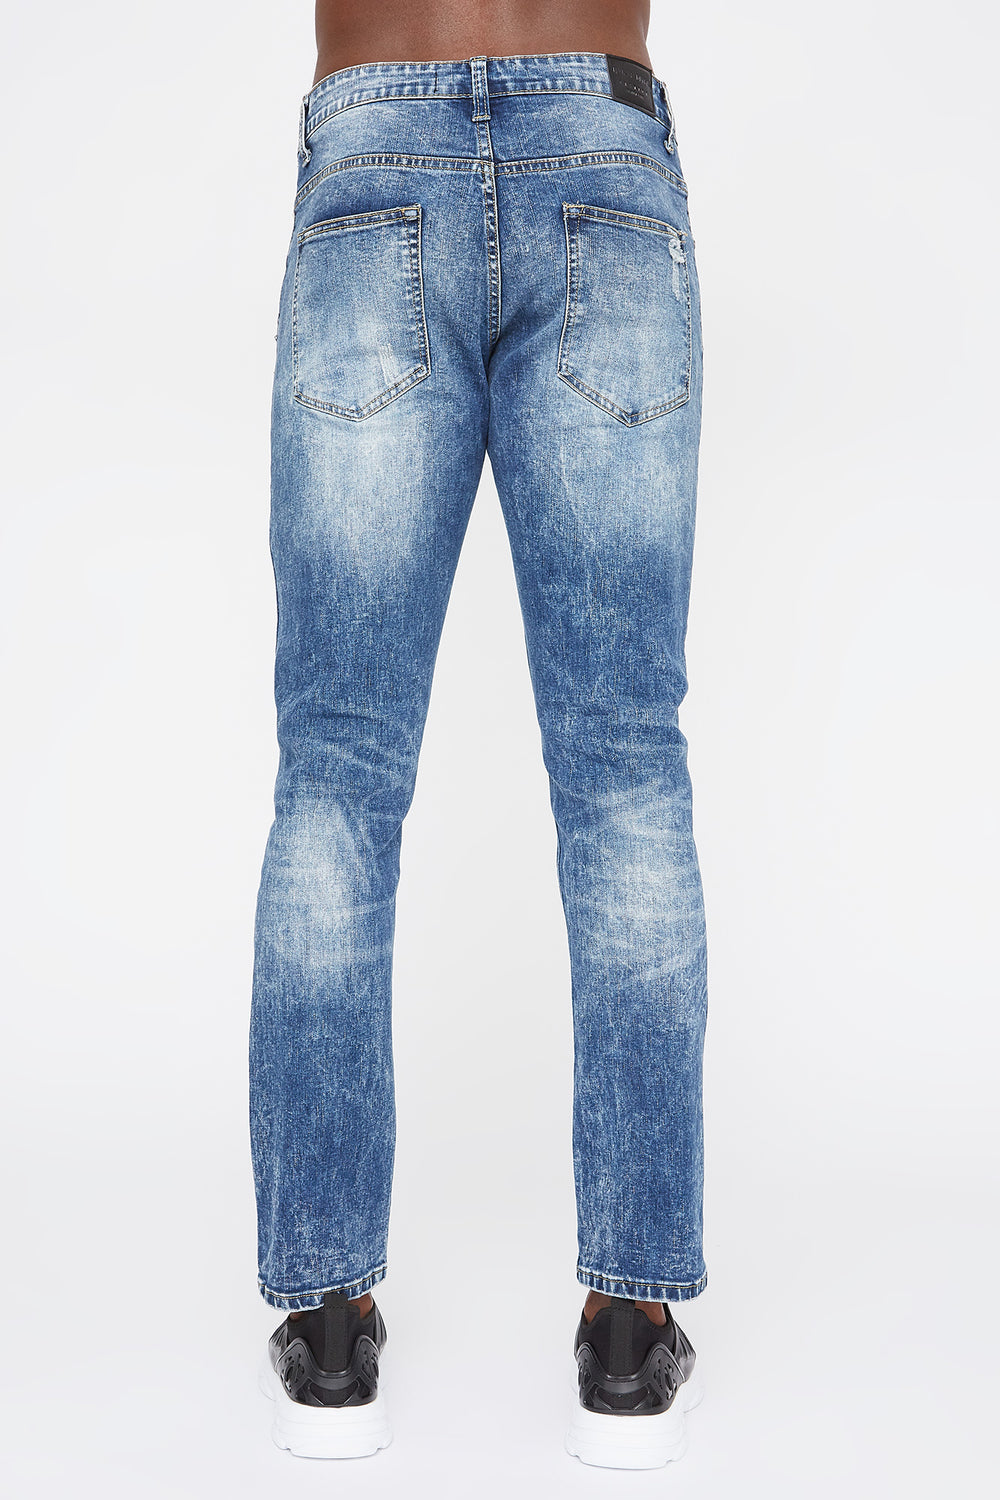 Mens Distressed Skinny Jeans Medium Blue